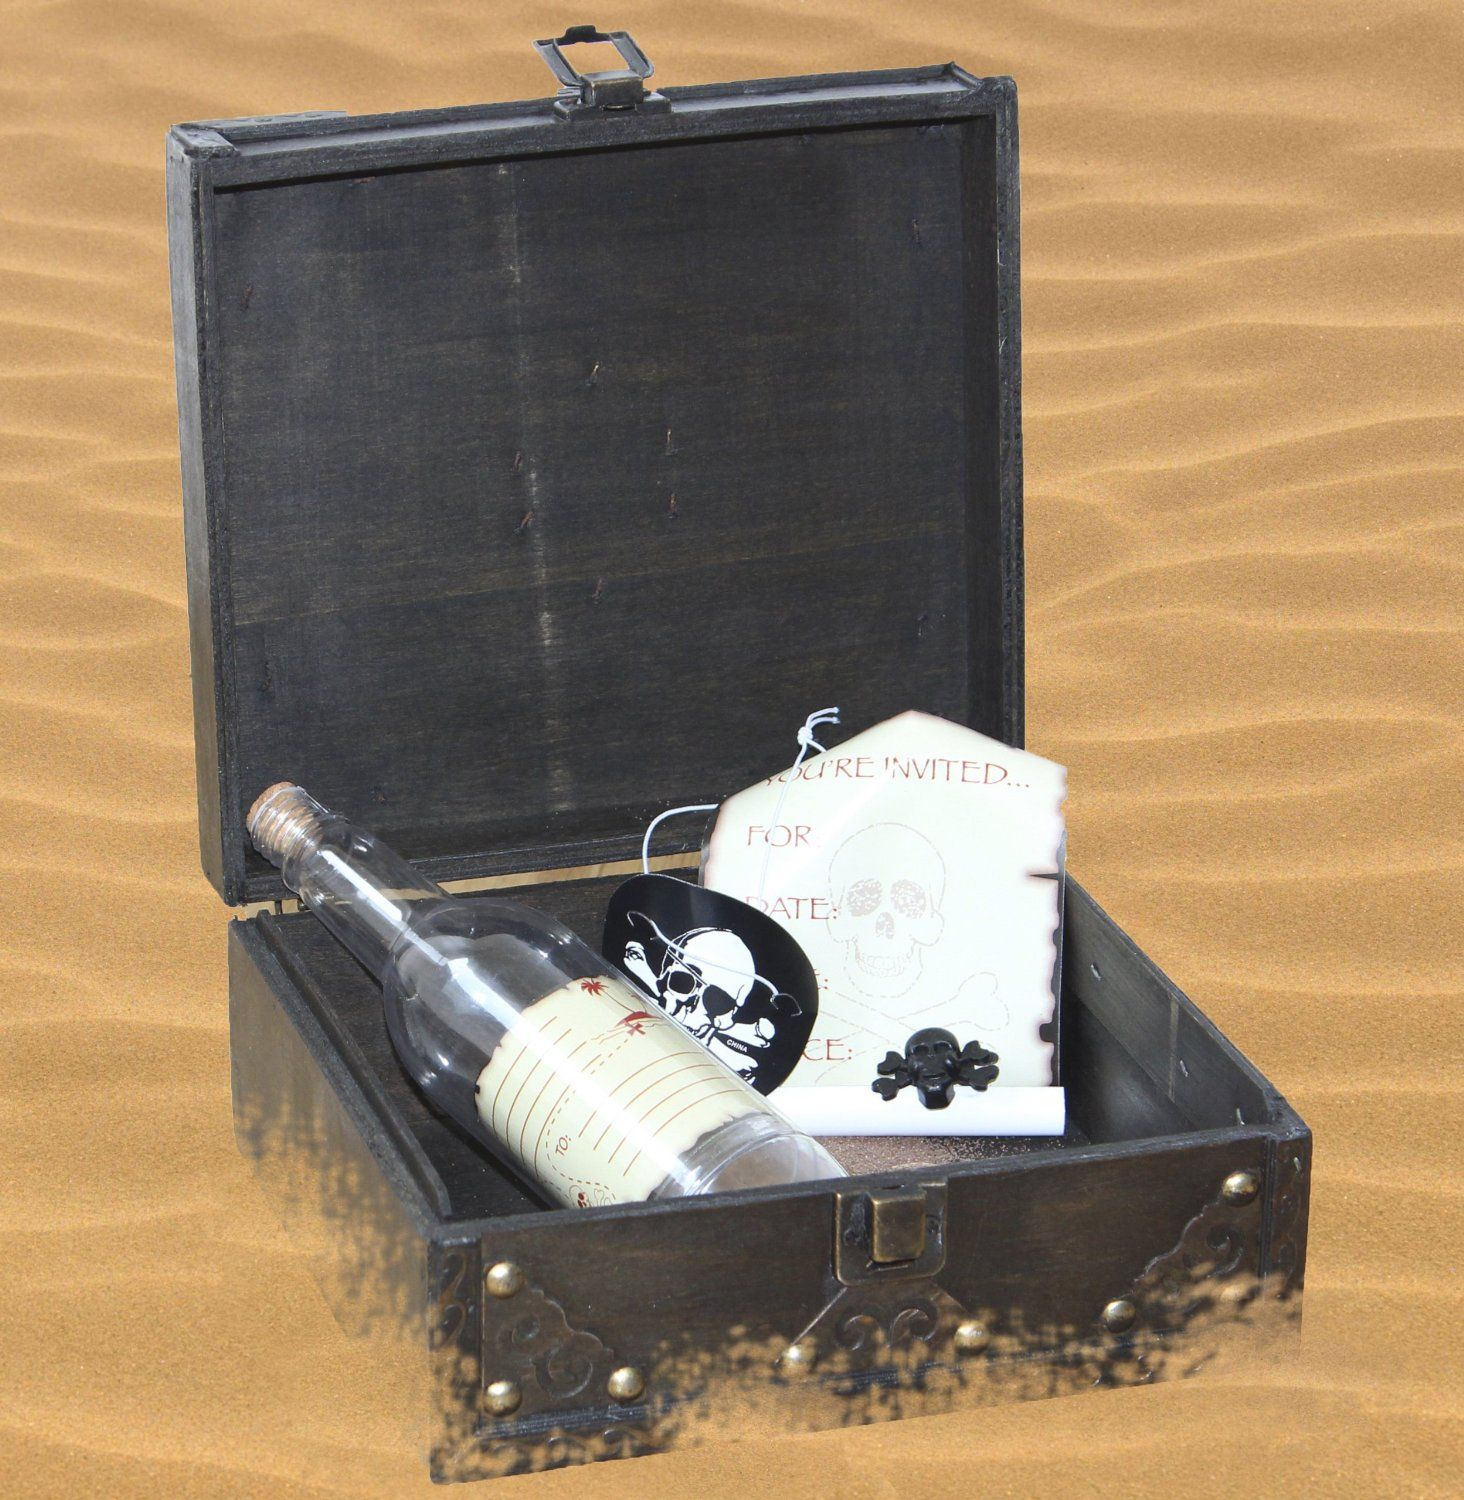 Amazon.com: Pirate Party Invitation Message in a Bottle with ...